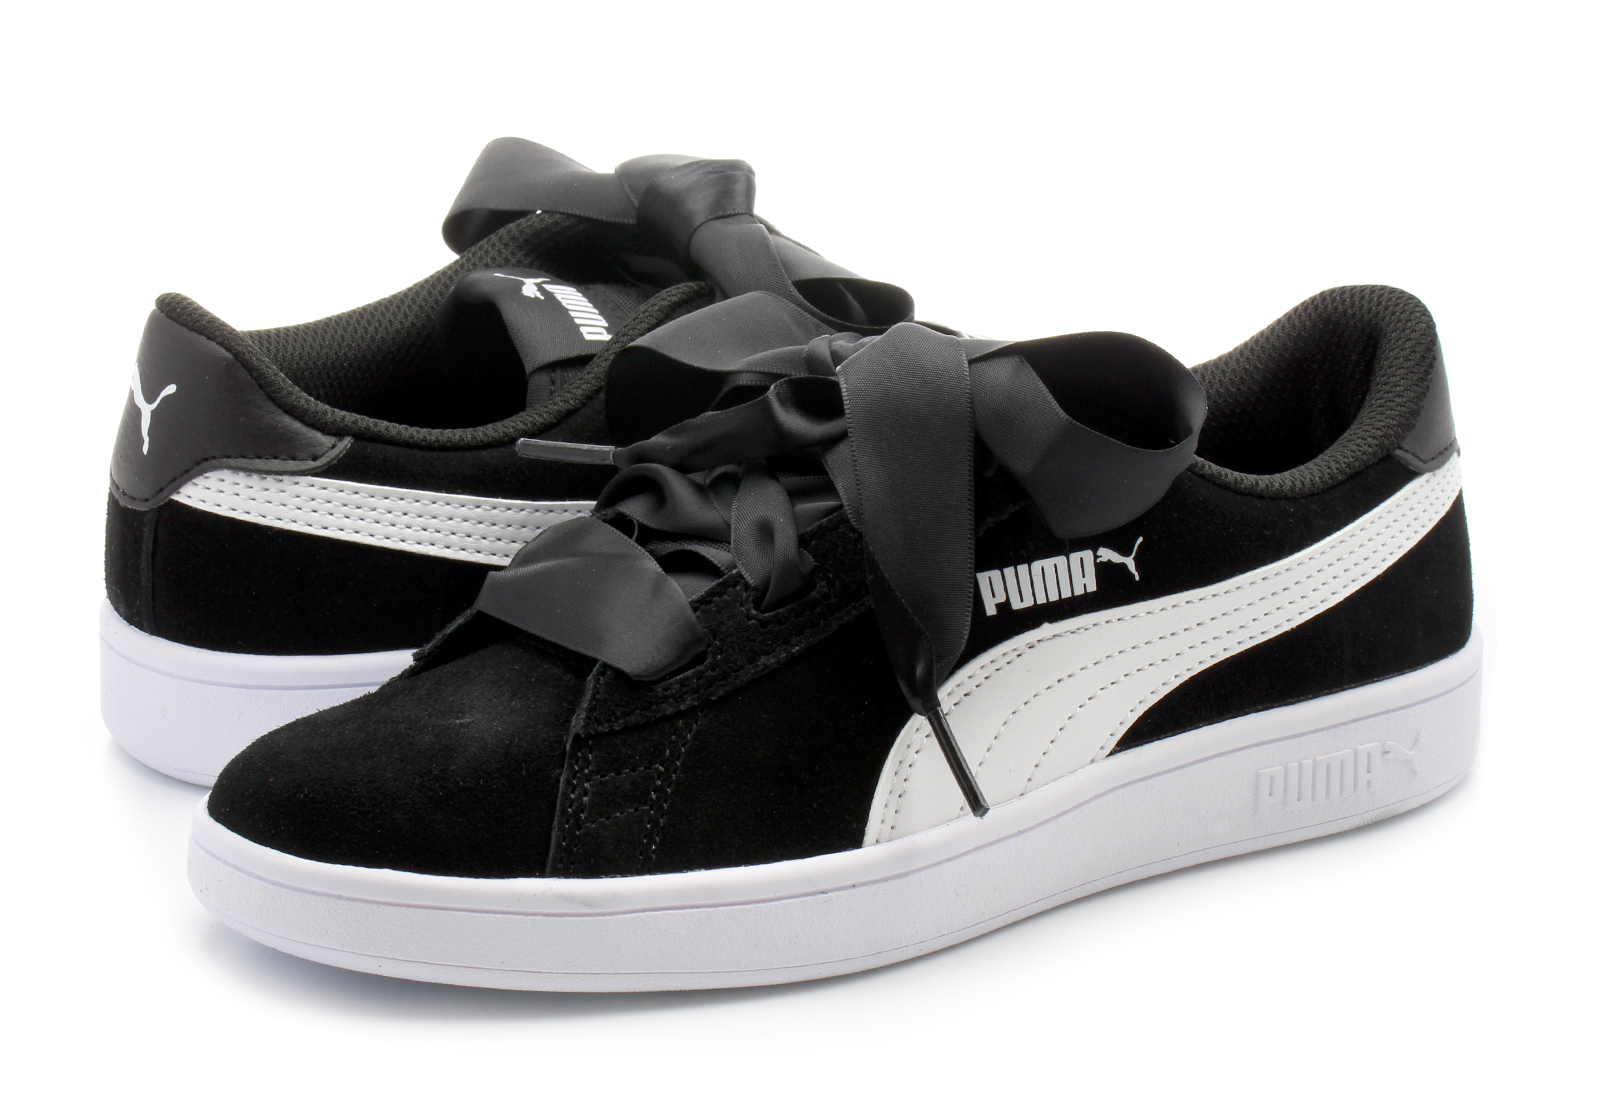 Puma Shoes - Smash V2 Ribbon Jr - 36600301-blk - Online shop for ... 9c024e3af